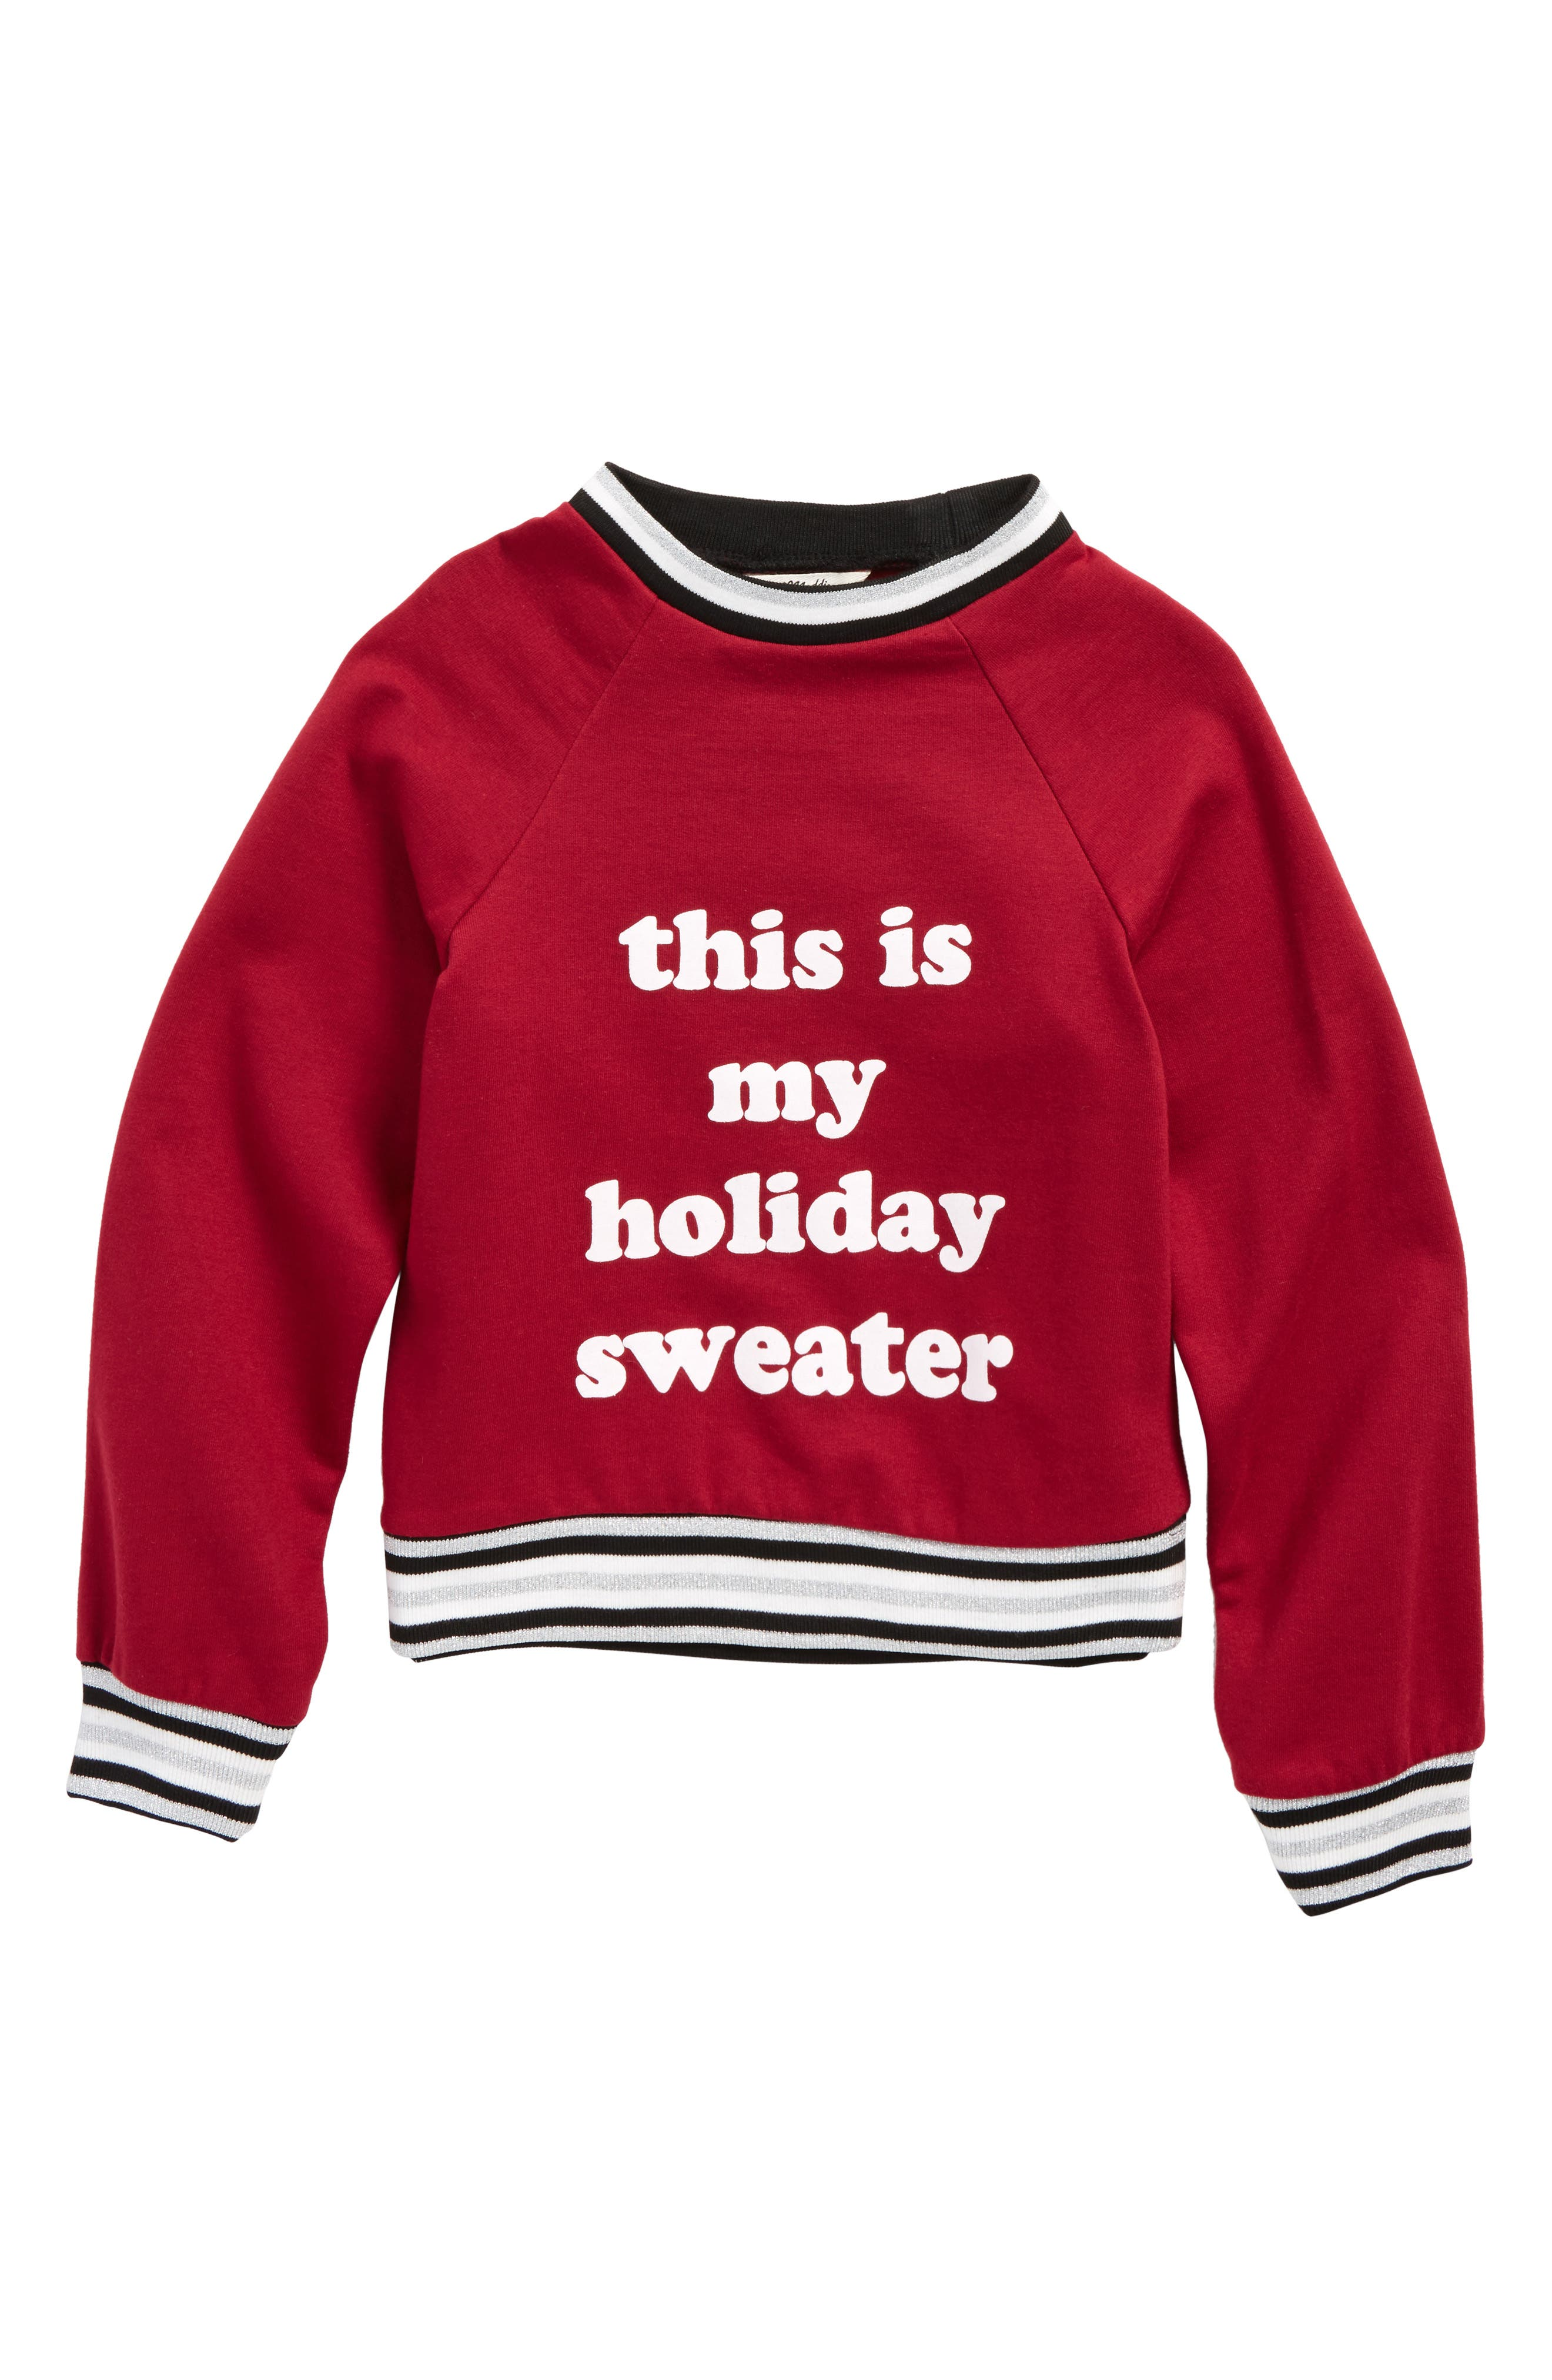 This Is My Holiday Sweater Graphic Sweatshirt,                             Main thumbnail 1, color,